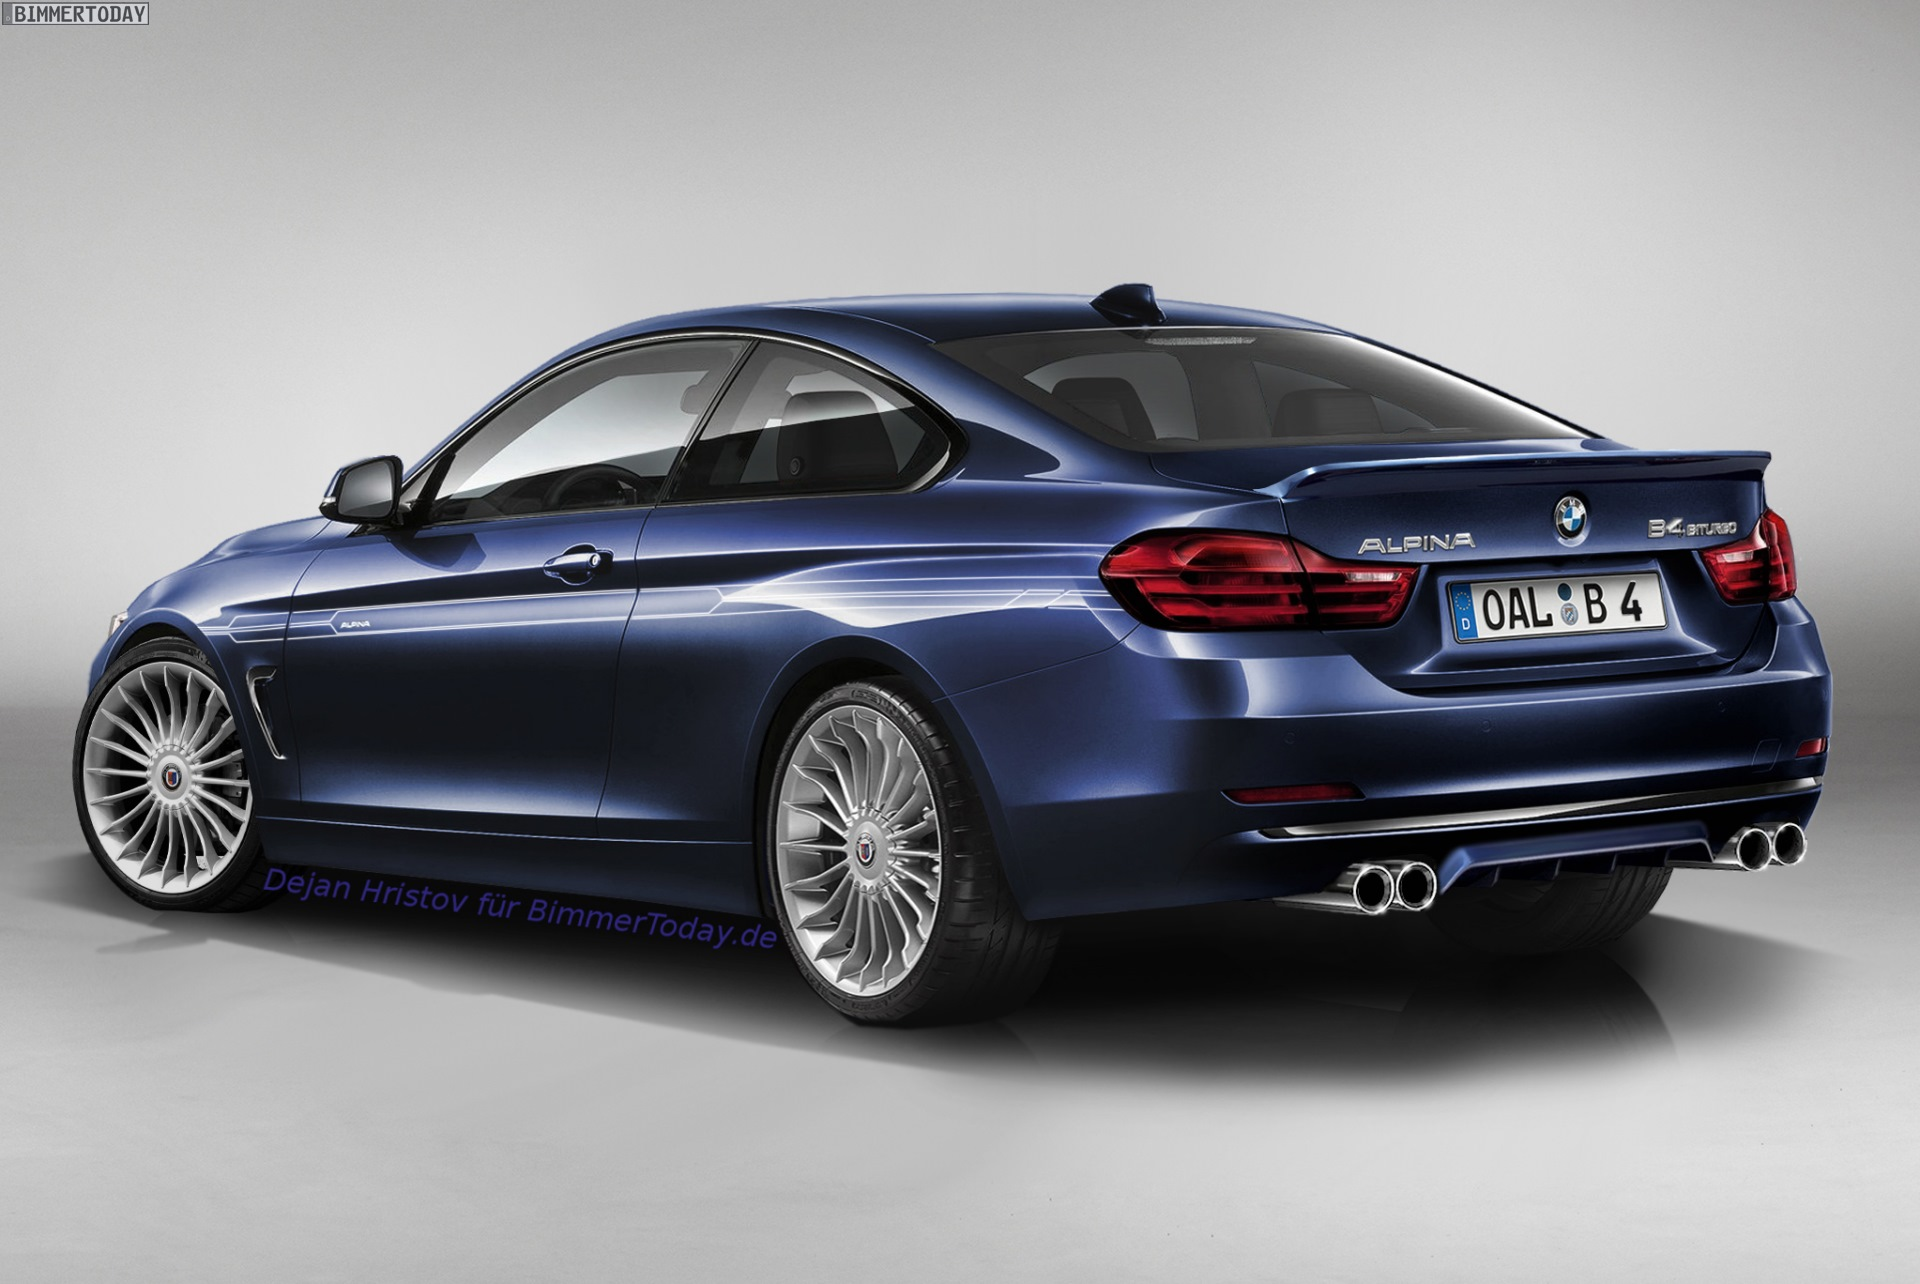 alpina b4 rendered could this be alpina 39 s take on the 4 series autoevolution. Black Bedroom Furniture Sets. Home Design Ideas